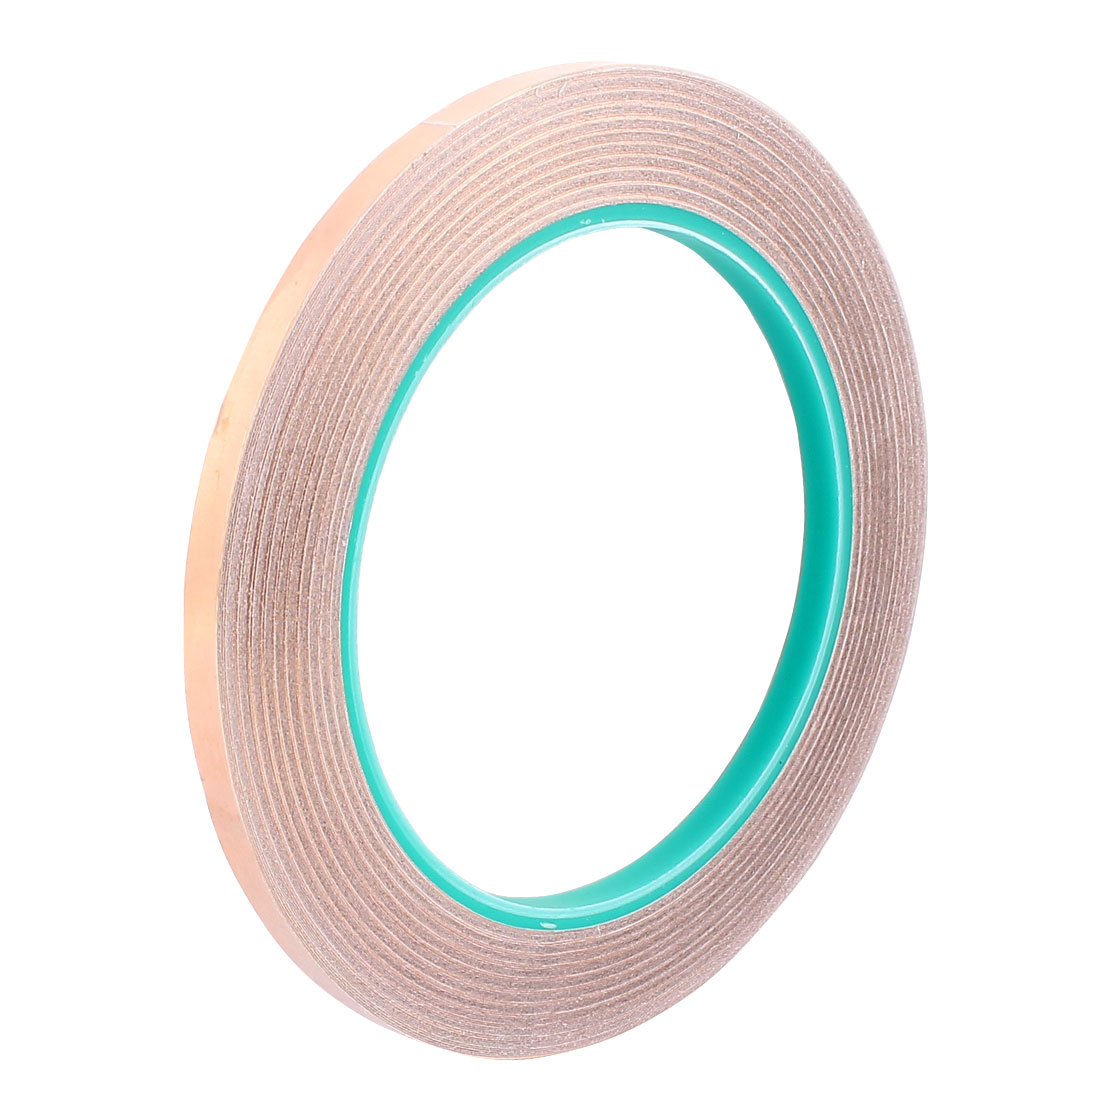 5mm Width 20m Long DIY Adhesive Double Sided Conductive Copper Foil Tape